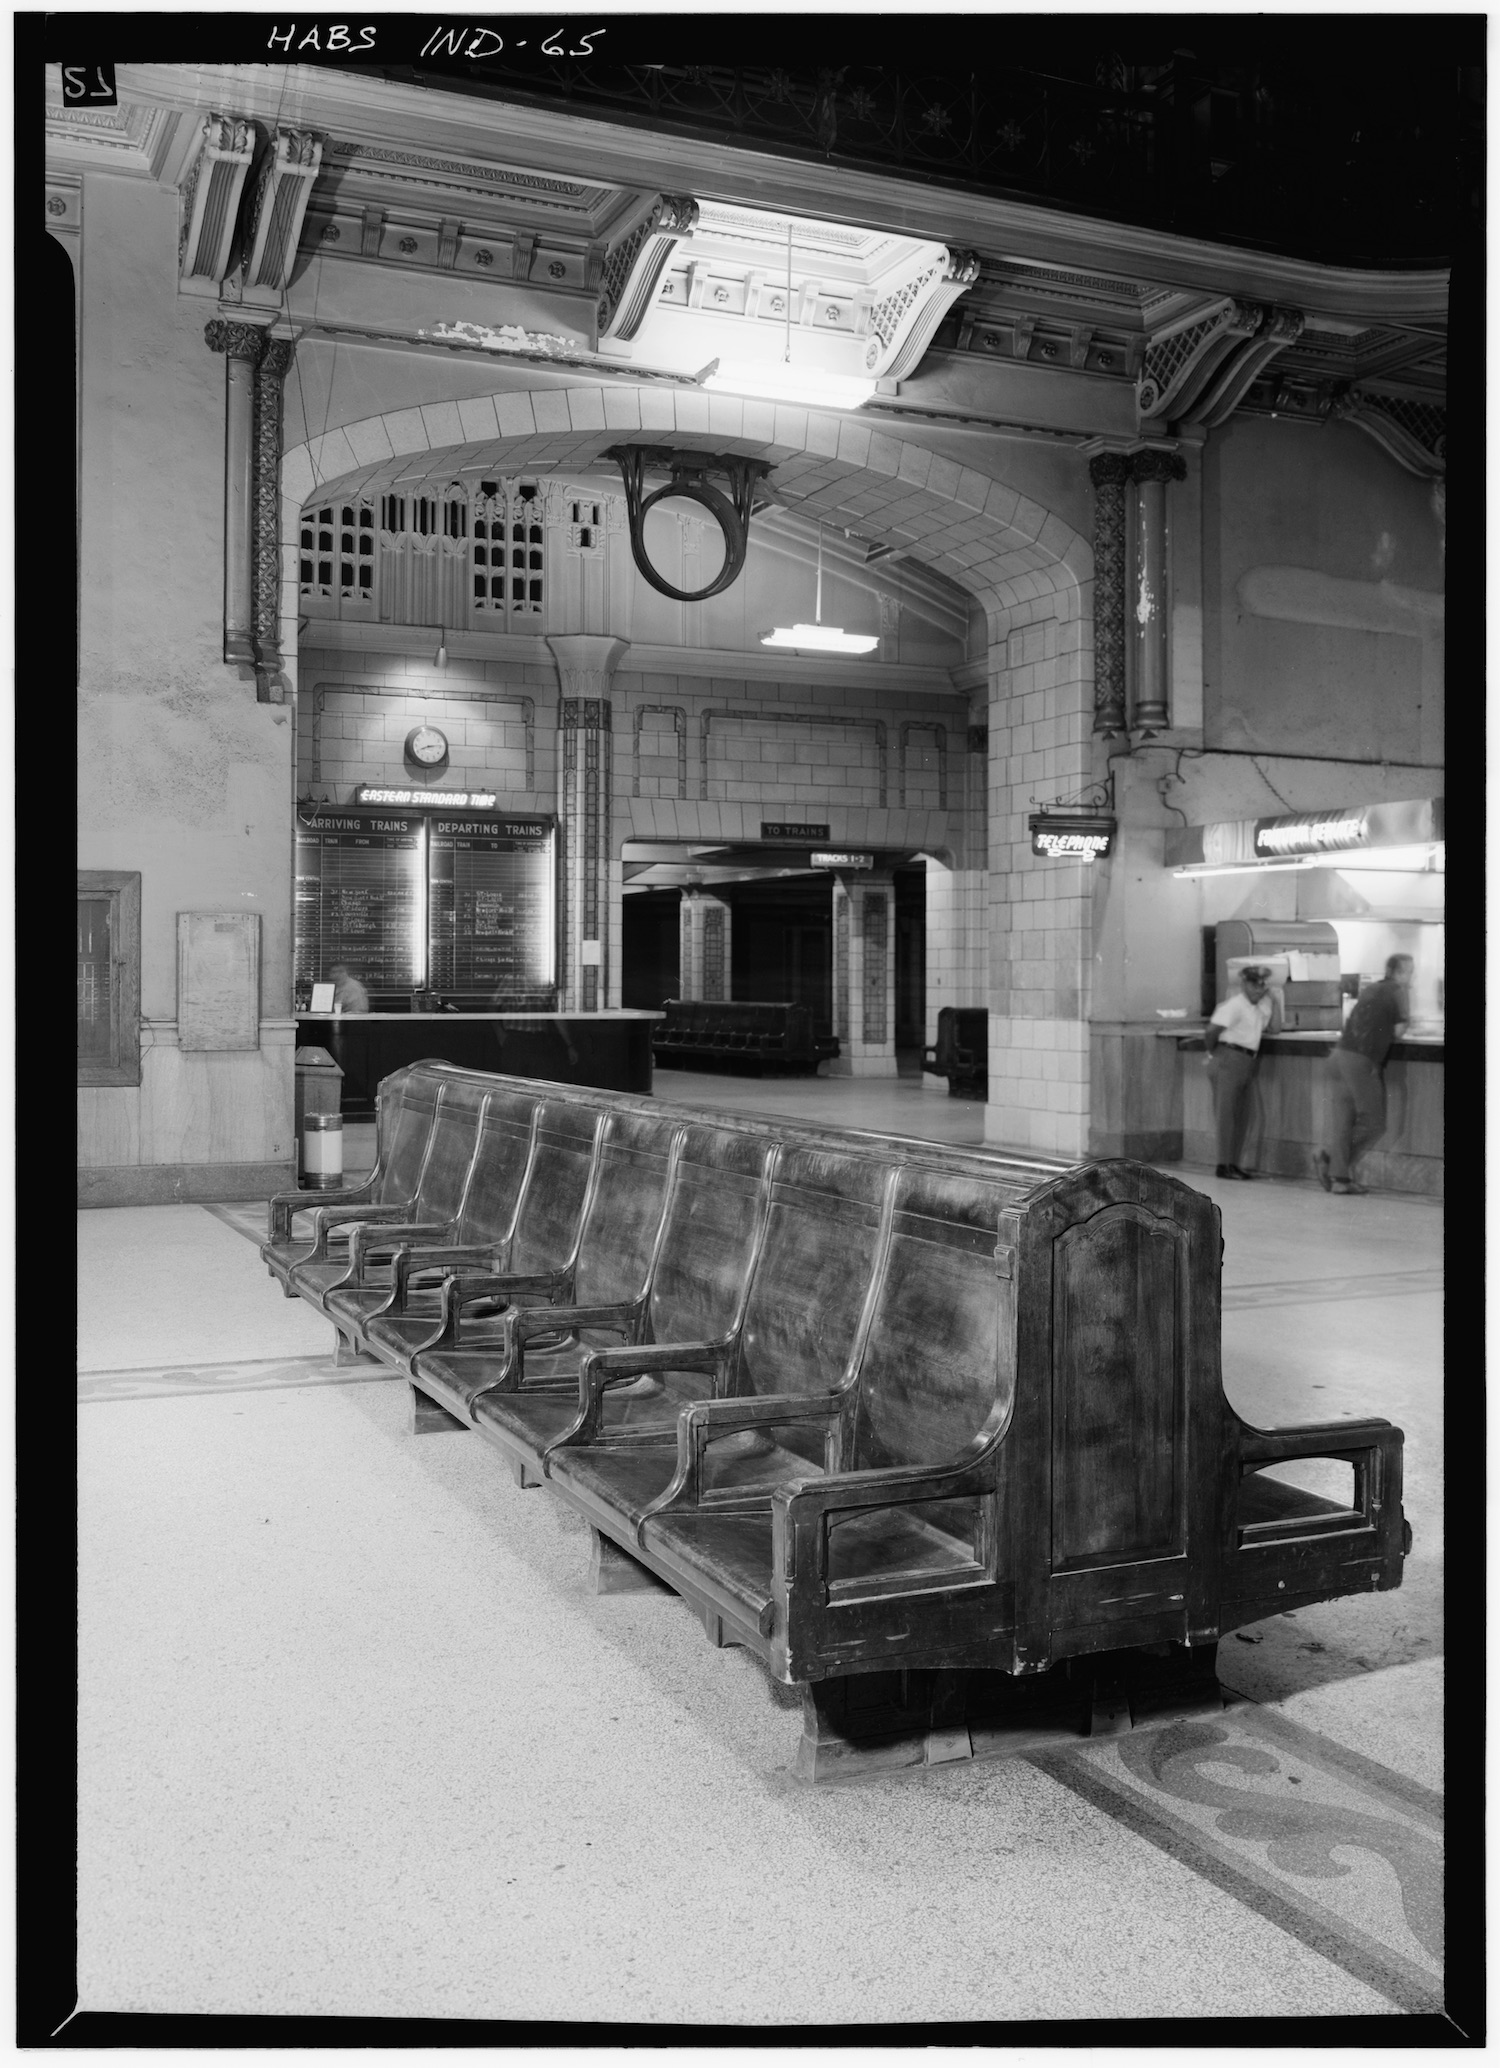 Waiting Room at Union Station, Jackson Place & Illinois Street, Indianapolis, Ind. (Aug. 1970). Image via Library of Congress.